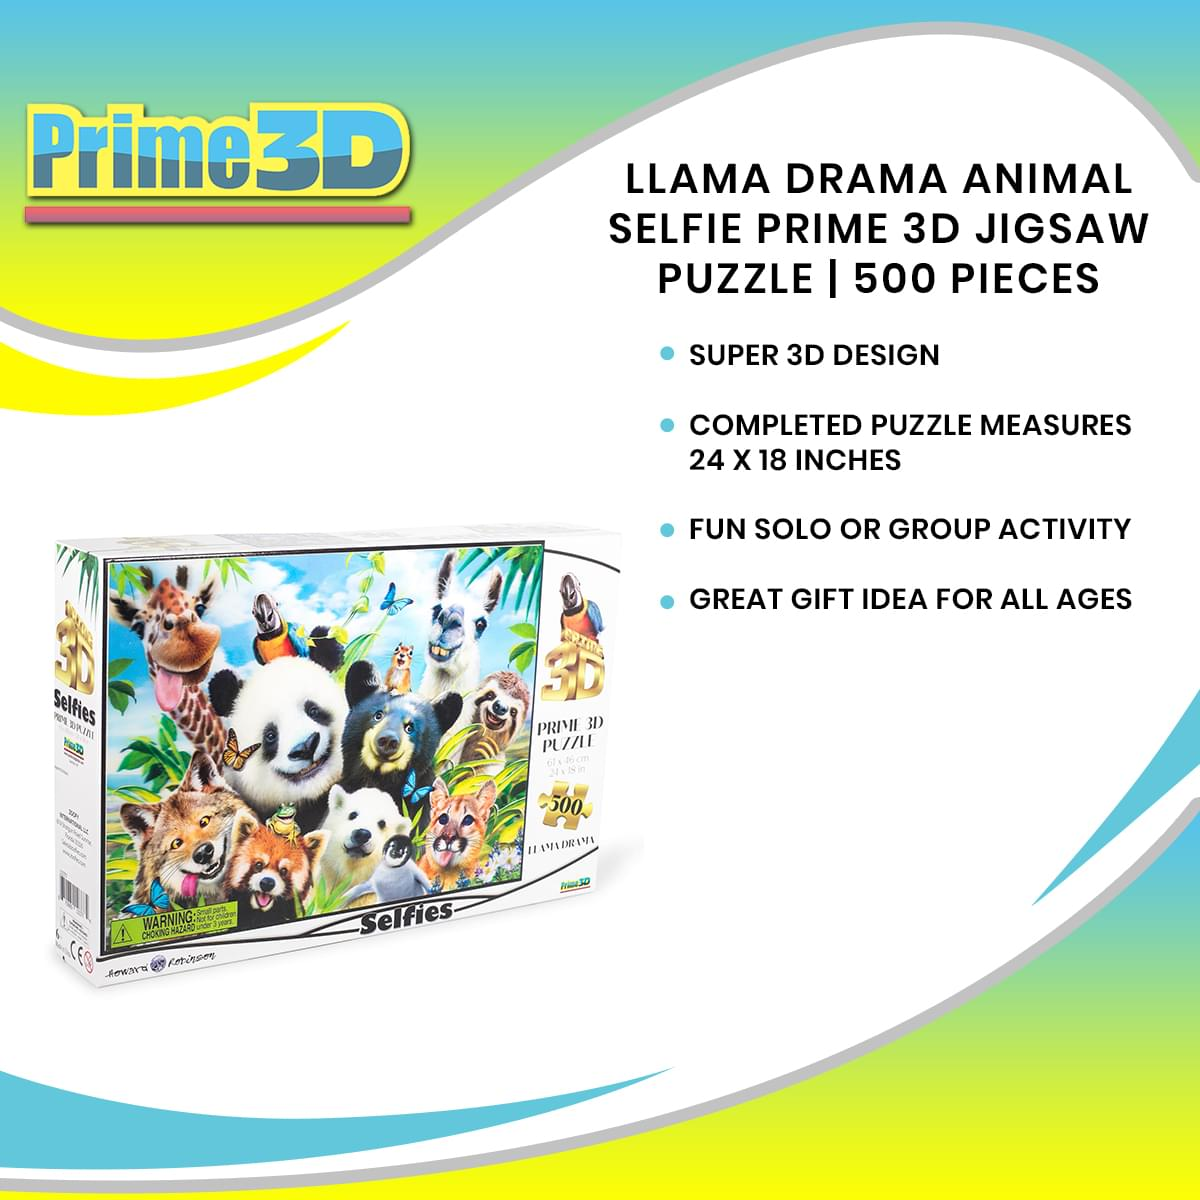 Llama Drama Selfie Super 3D 500 Piece Jigsaw Puzzle For Adults And Kids